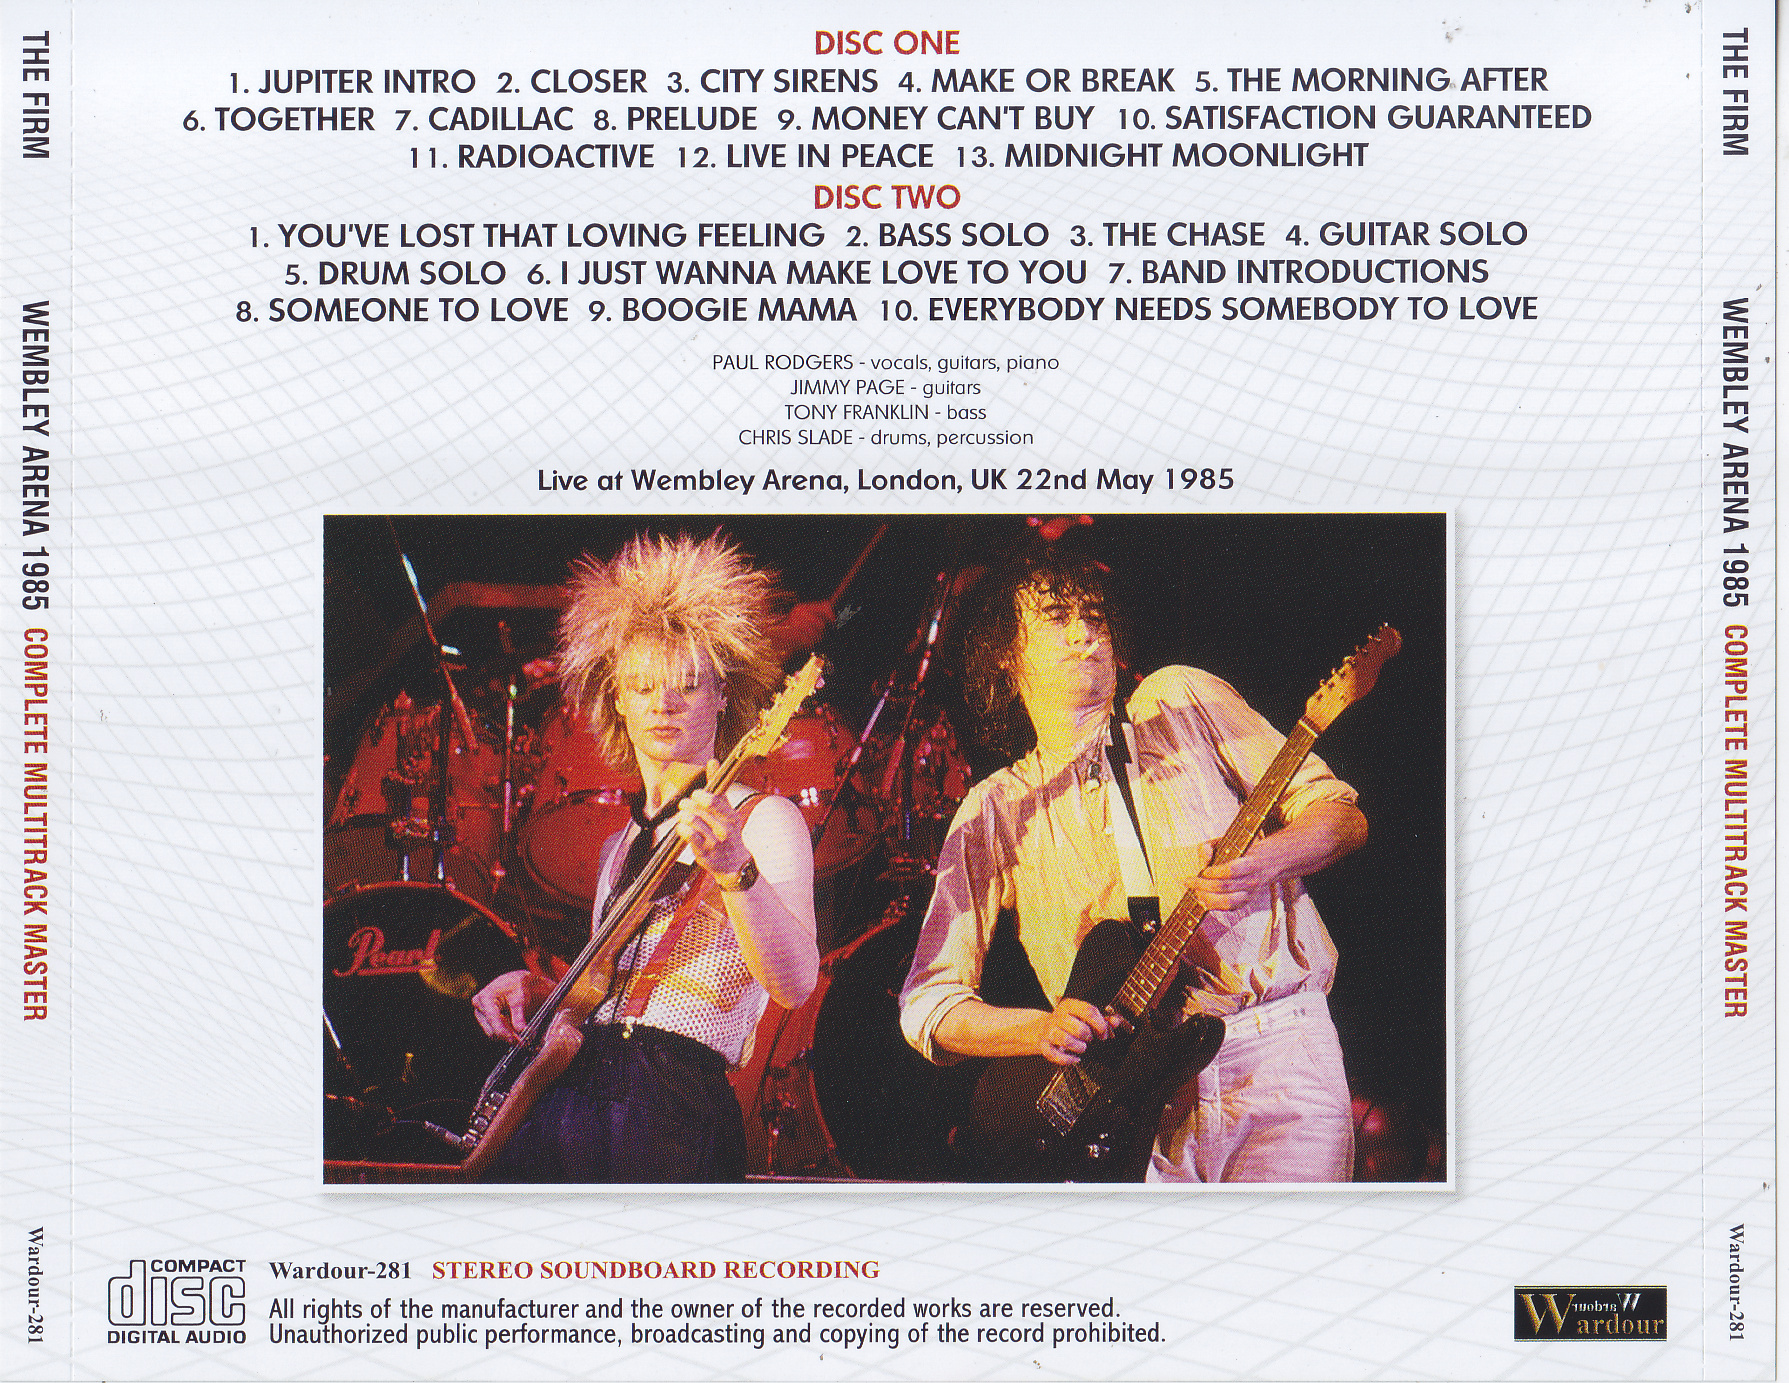 Firm, The - Wembley Arena 1985 Complete Multitrack Master ( 2CD) Wardour-281